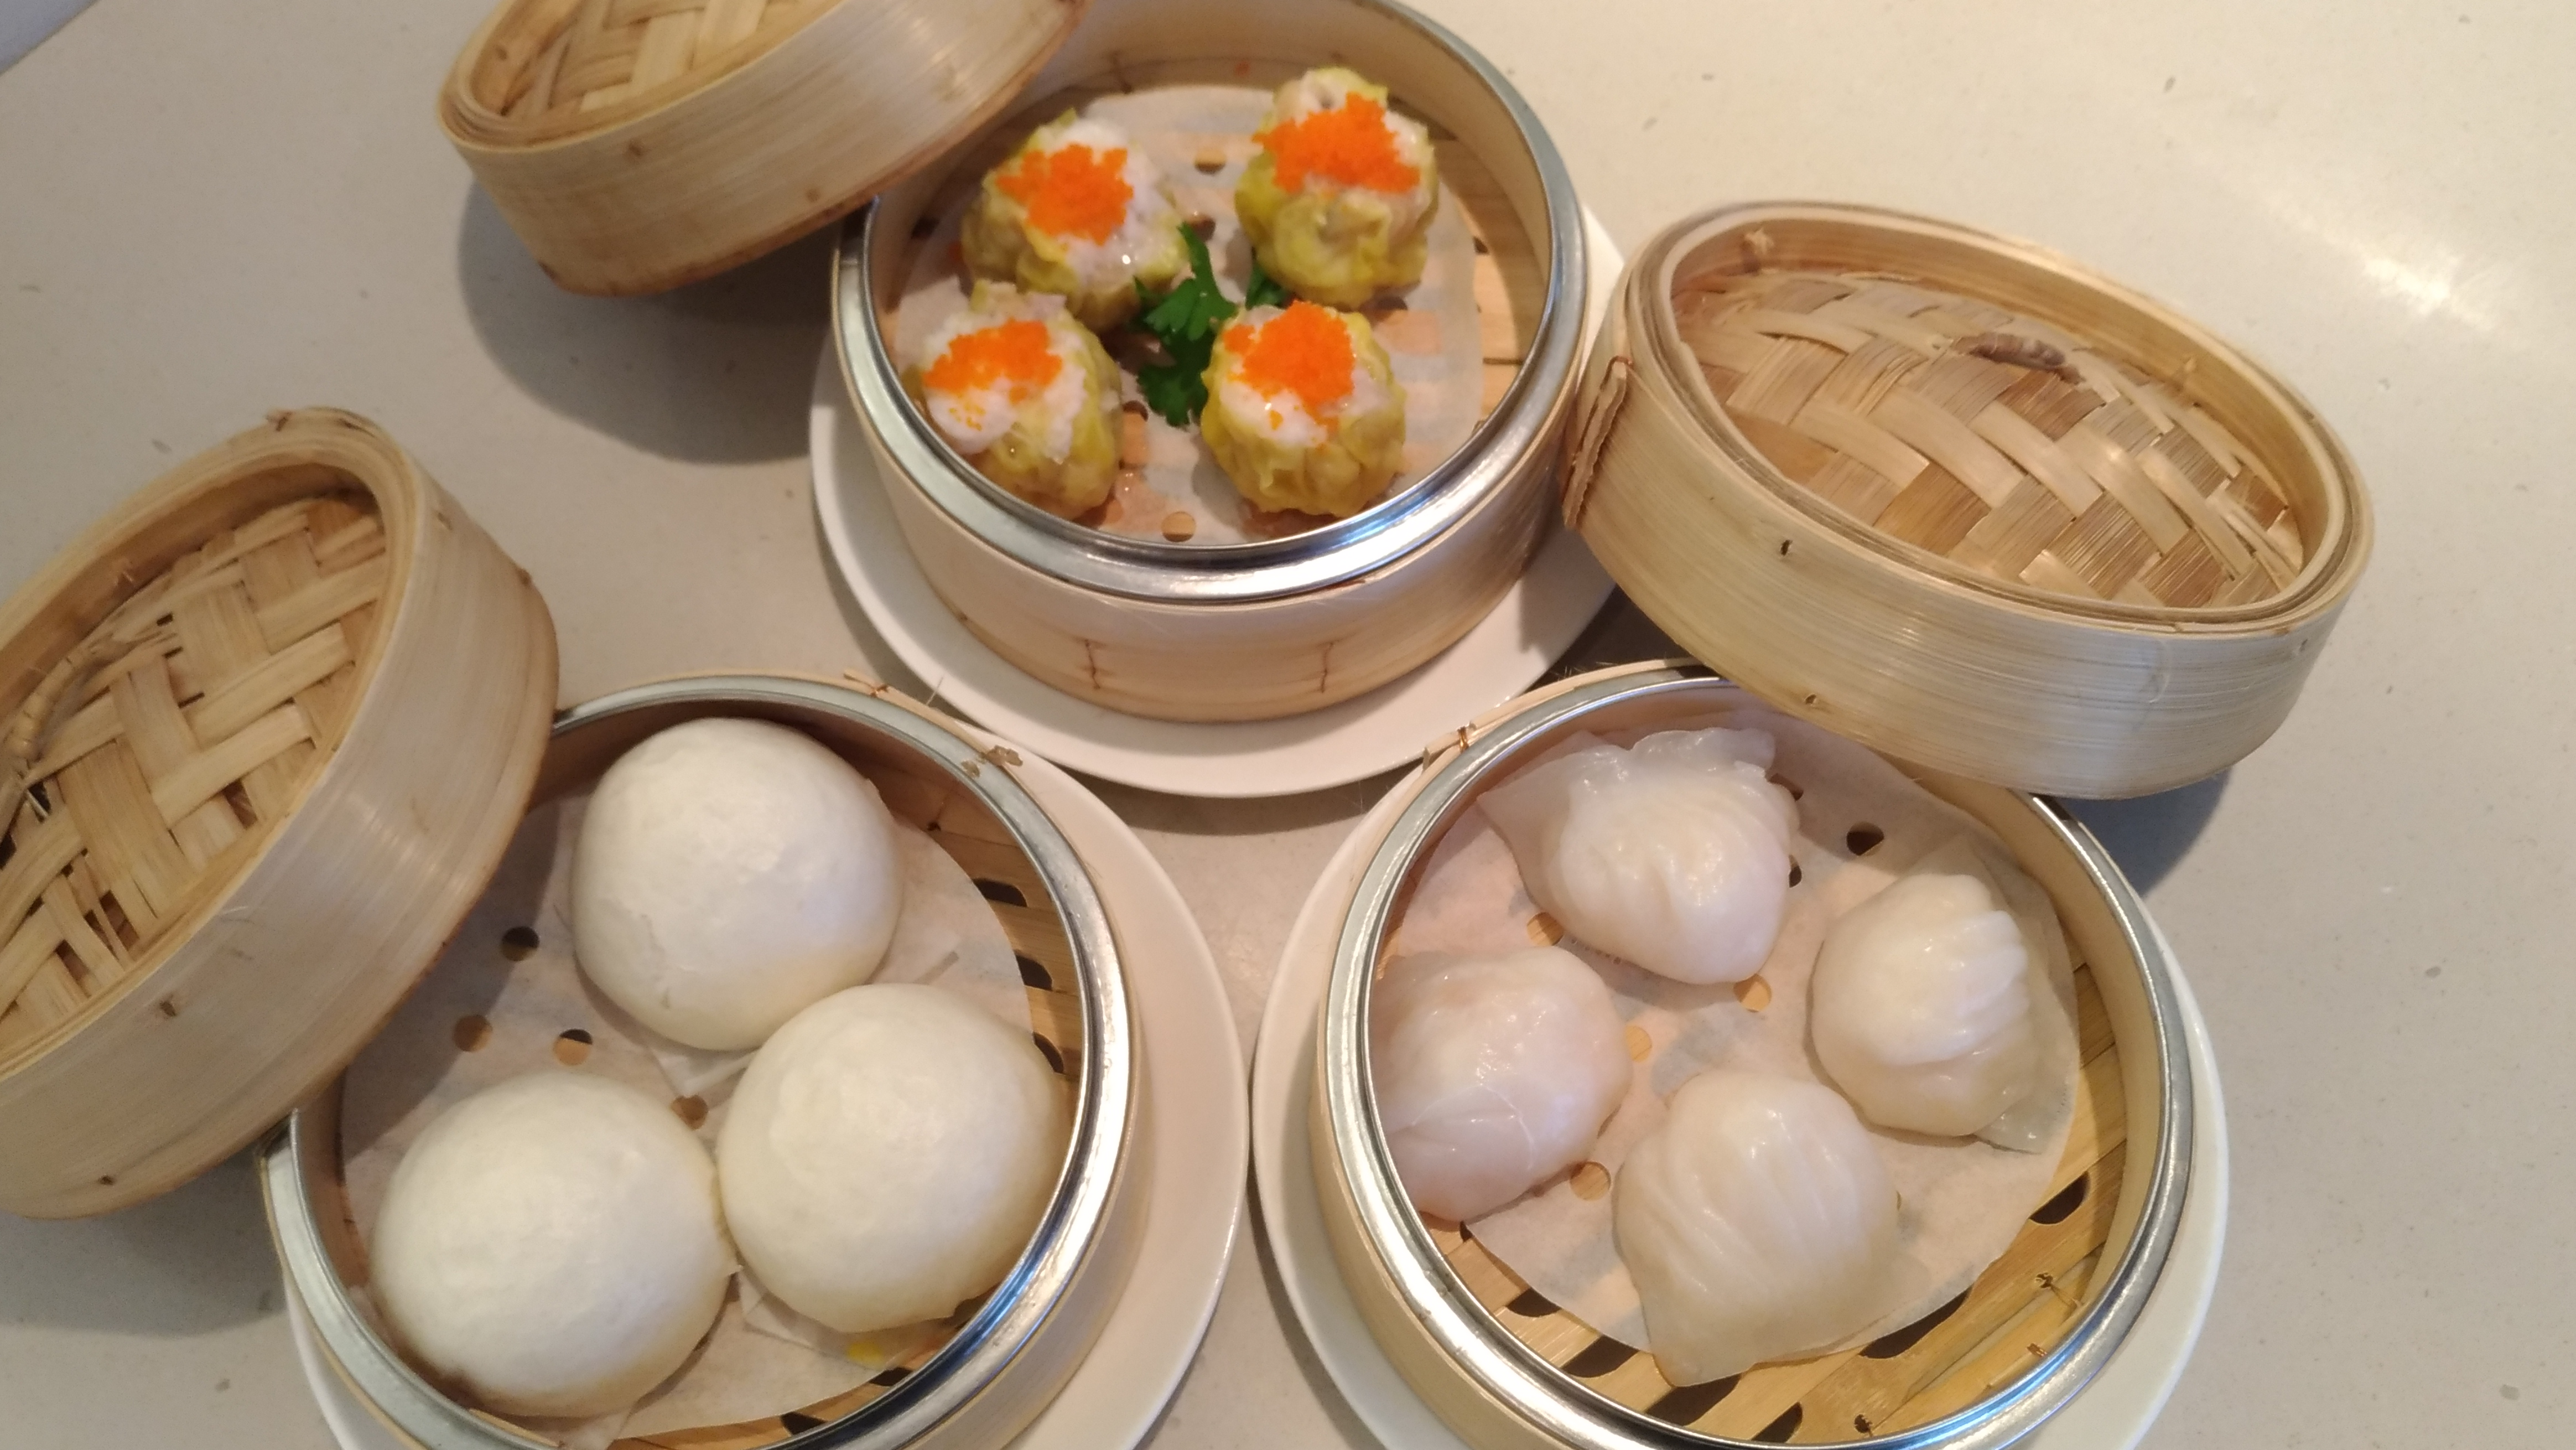 We Sampled Some Of Their Dim Sum Dishes Such As Large Shrimp Dumplings,  Pork Siu Mai With Fish Roe, And Creamy Egg Yolk Custard Buns That Oozed Out  When You ...